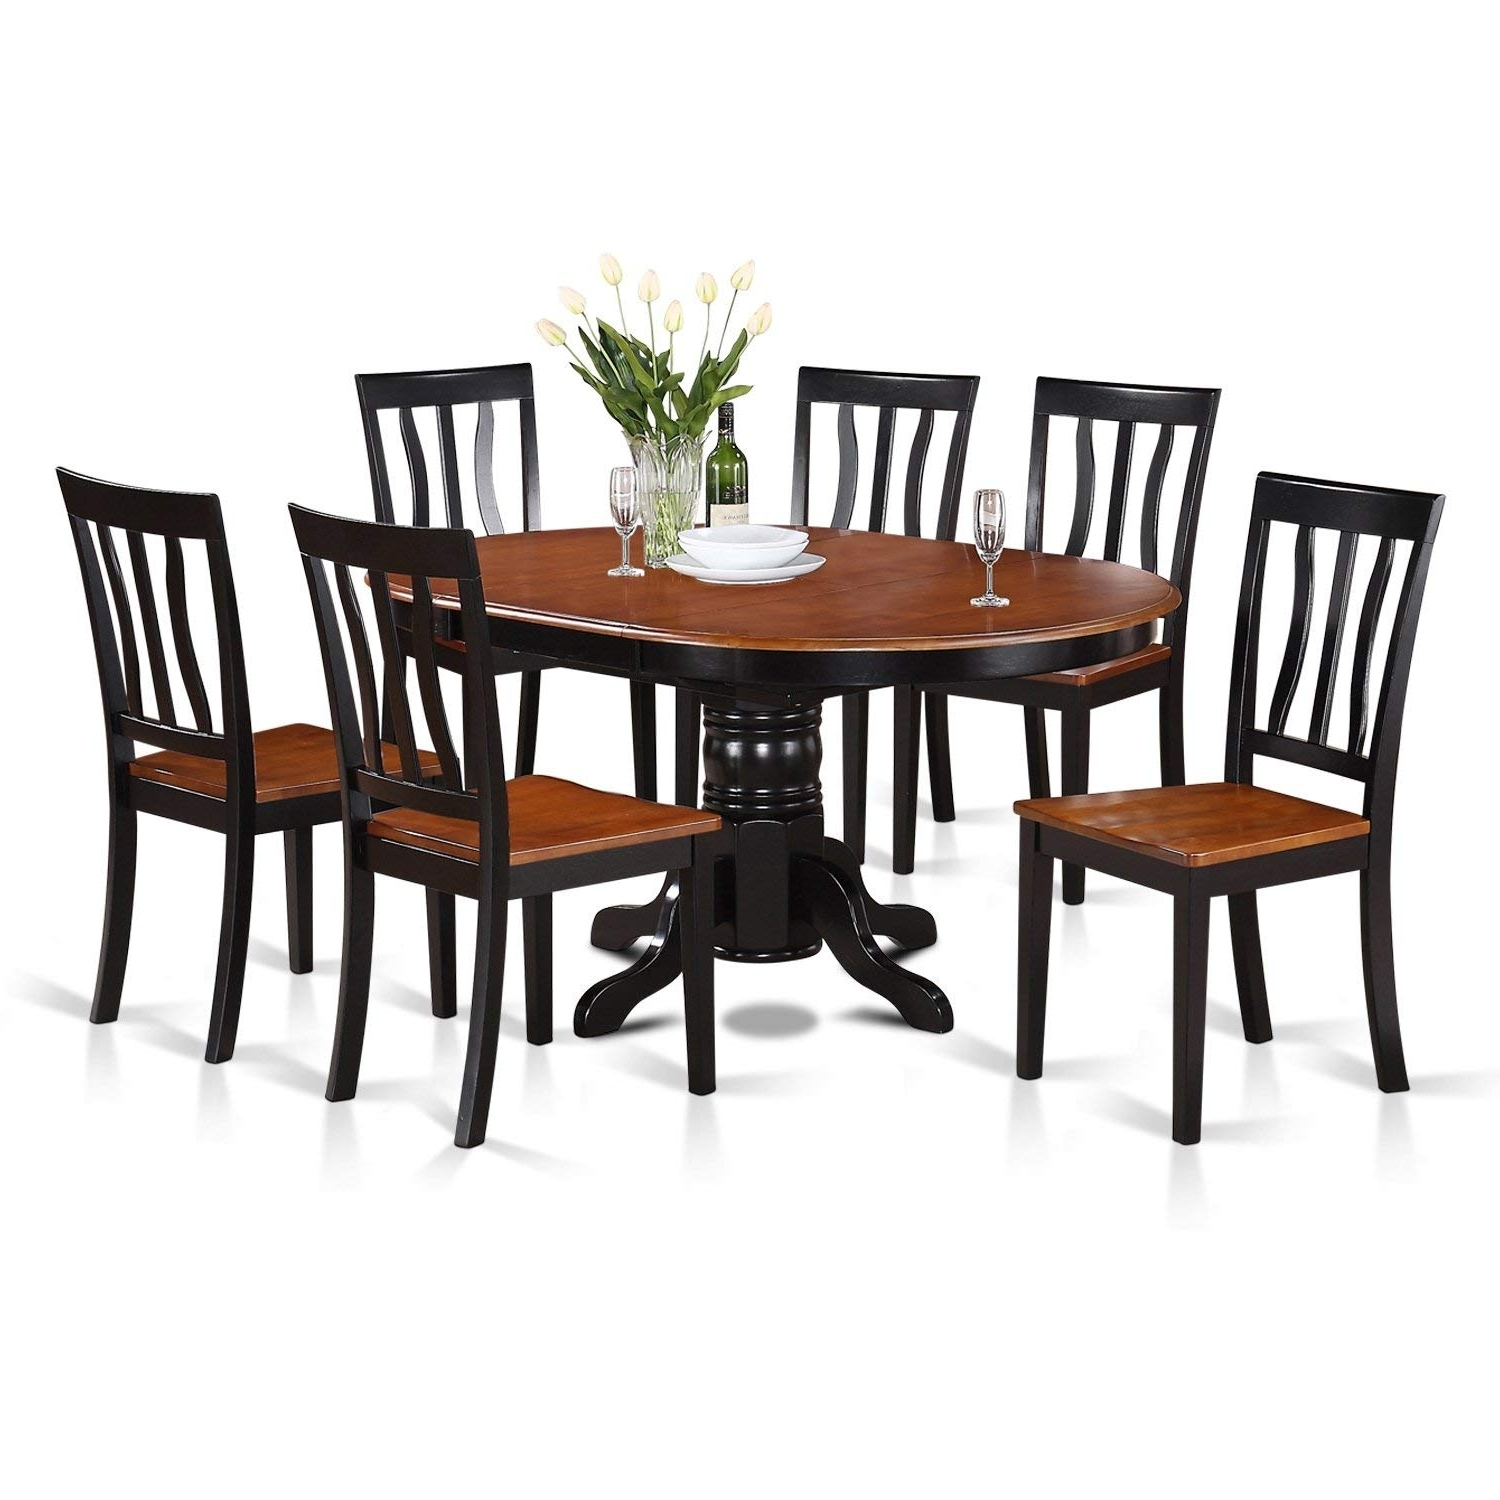 Cheap Dining Room Chairs With Current Amazon: East West Furniture Avat7 Blk W 7 Piece Dining Table Set (Gallery 1 of 25)